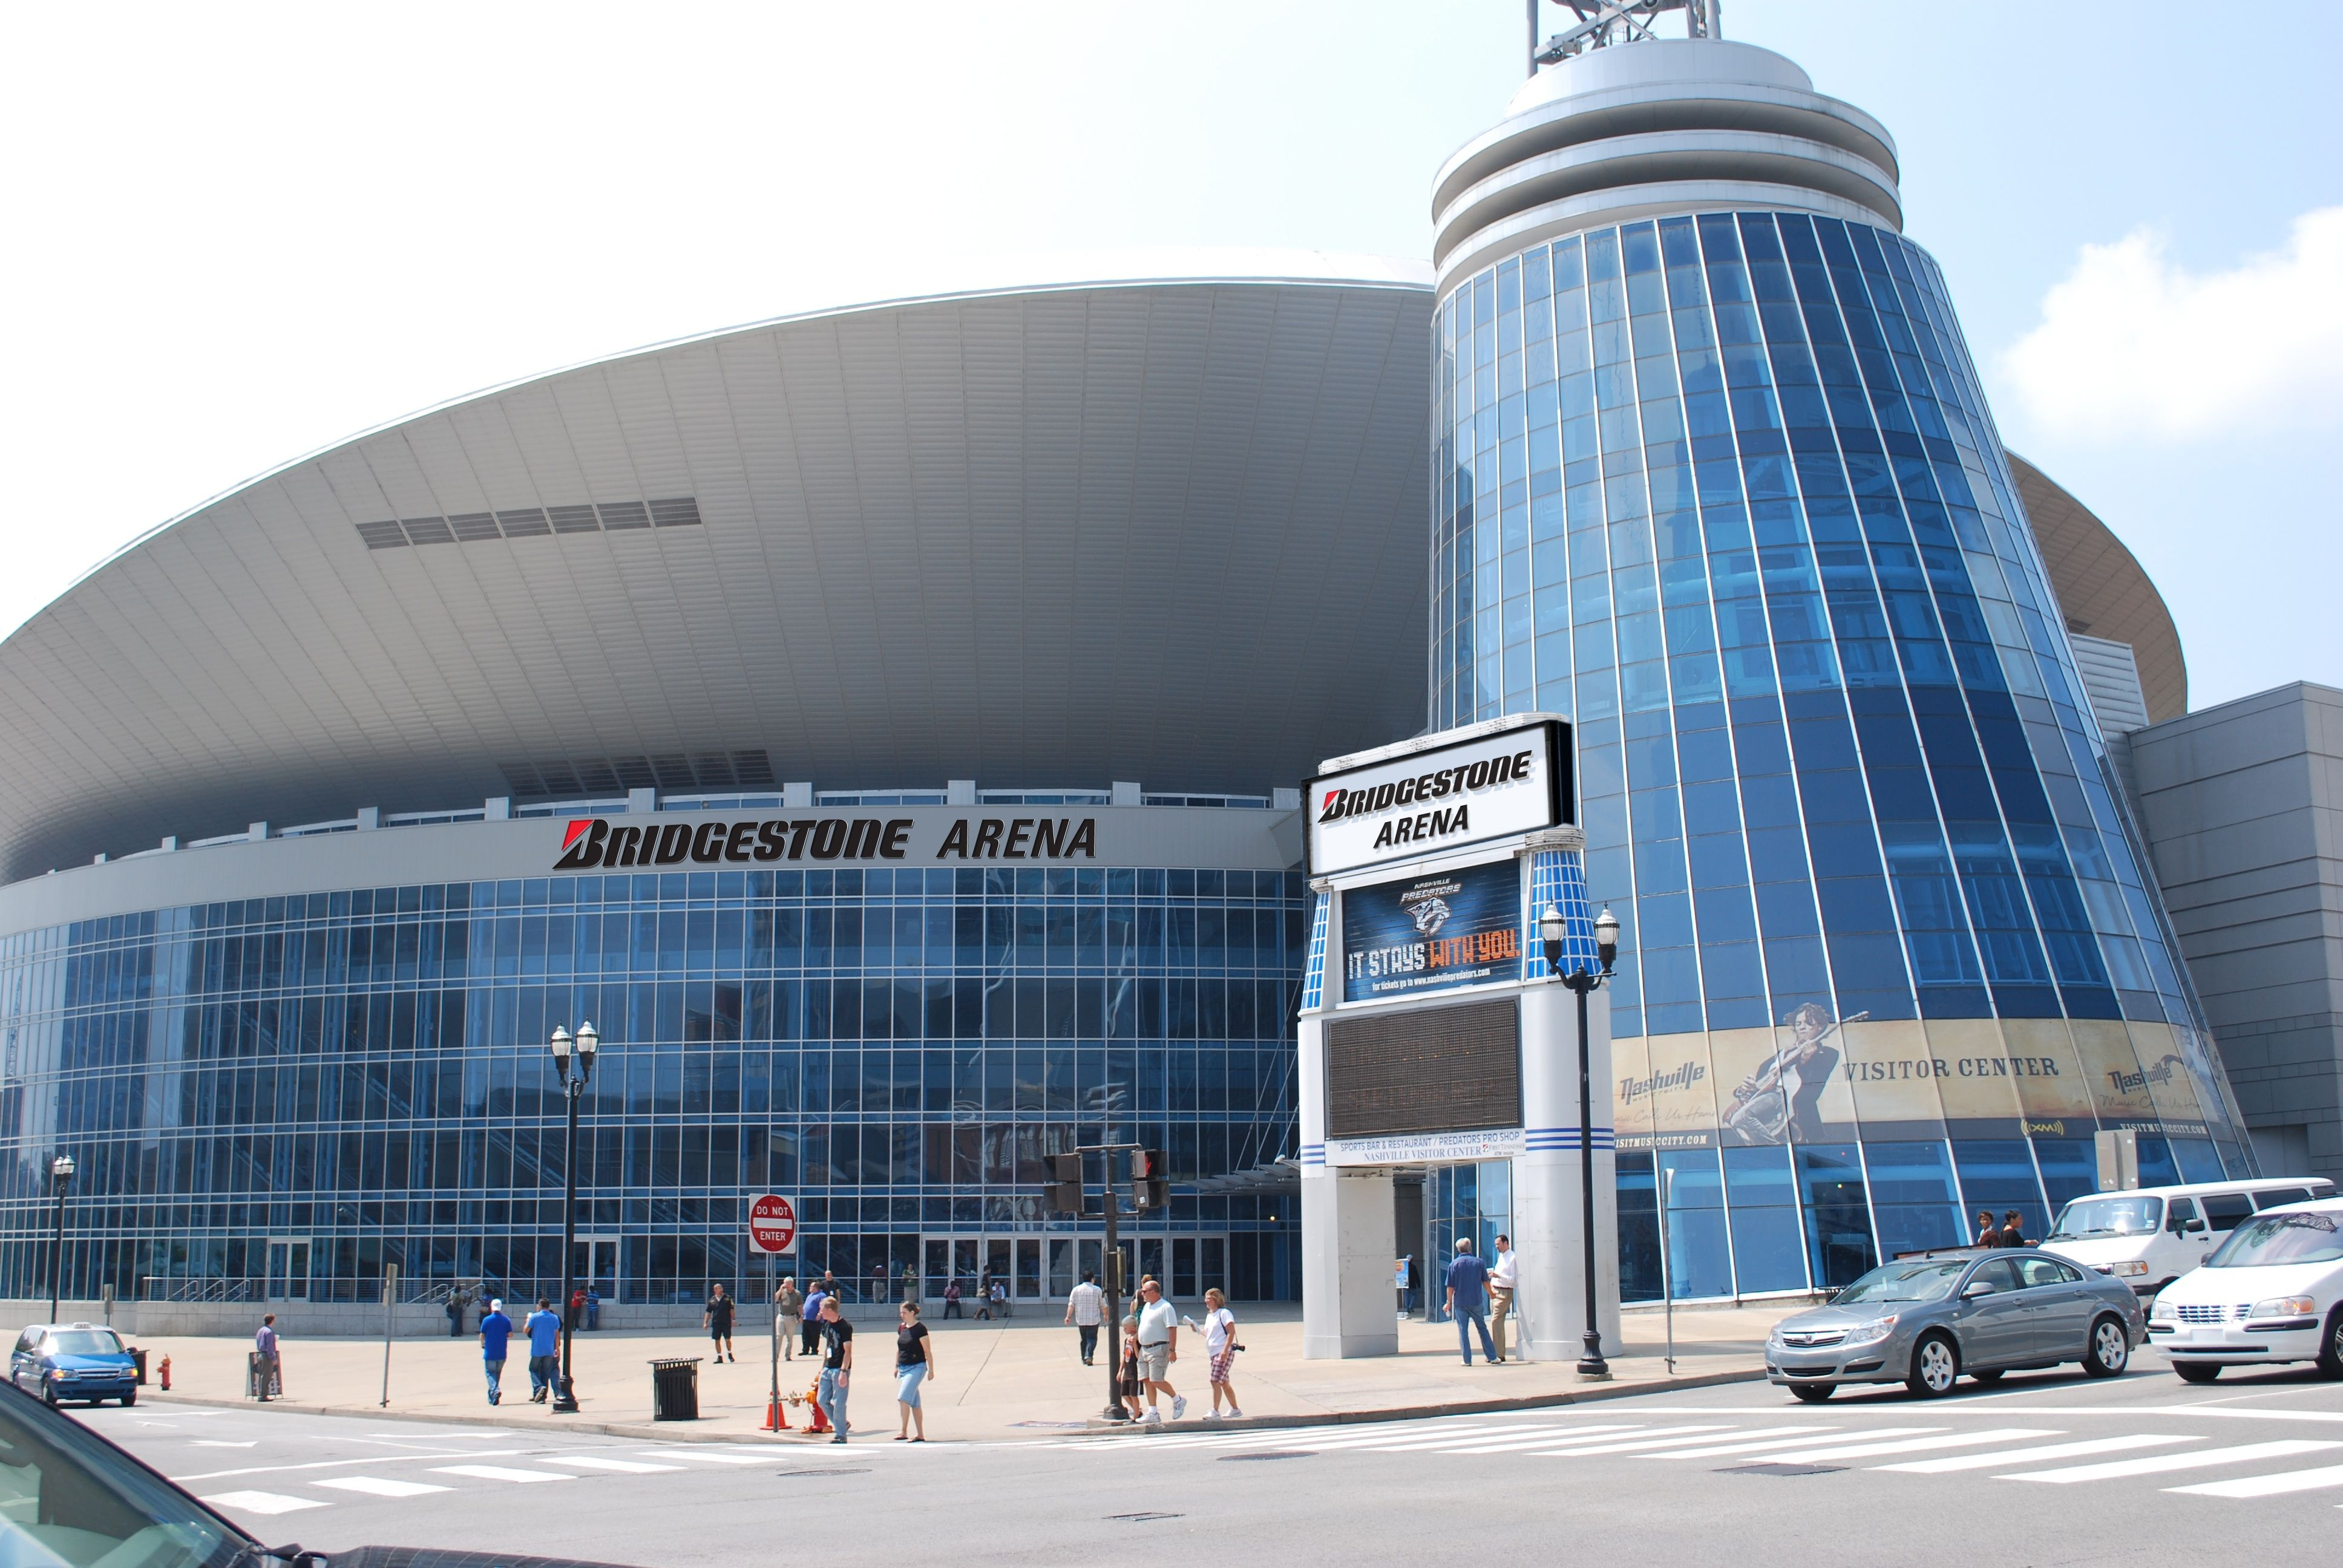 Bridgestone Arena in the heart of downtown Nashville. Built in 1996. Venue for sporting events, concerts and home of the Nashville ice hockey team, the Predators.